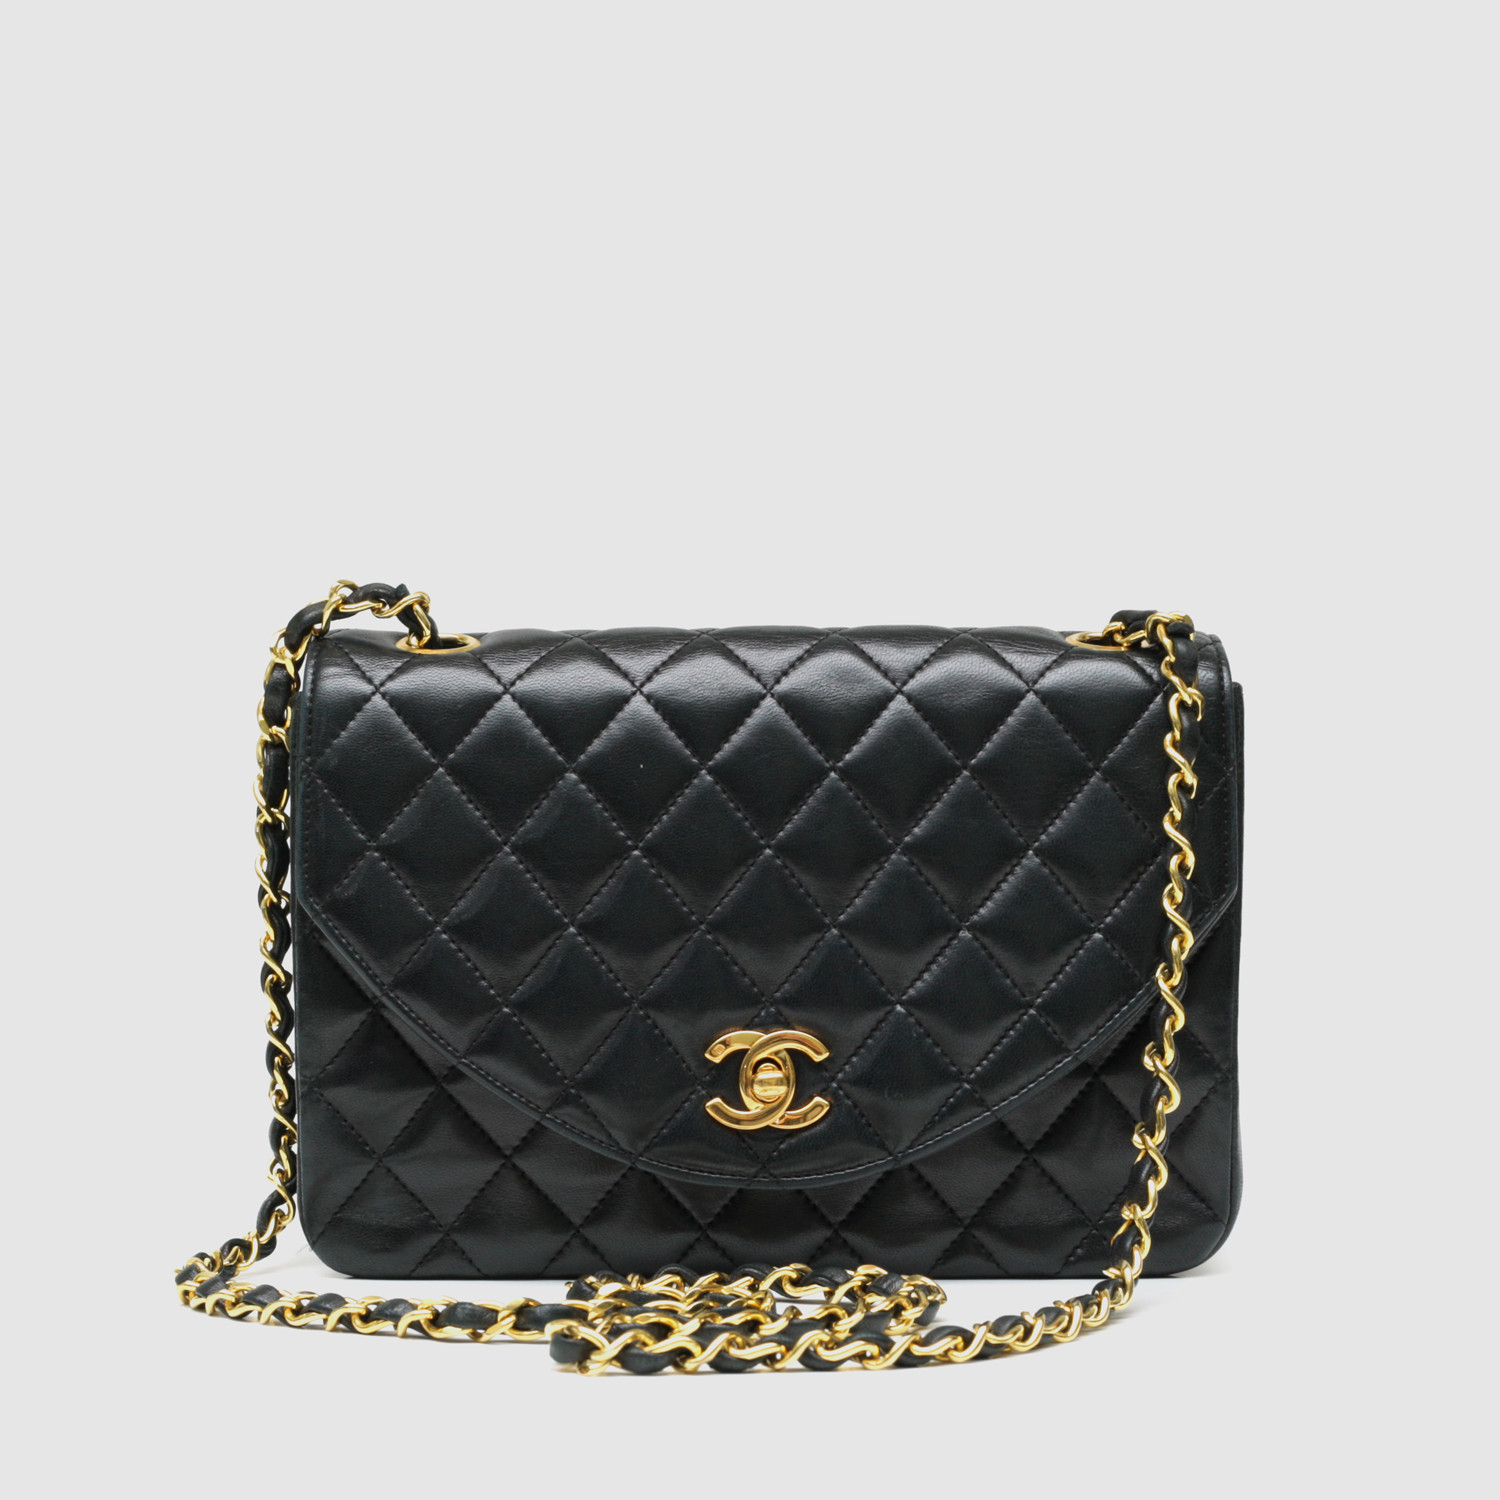 Chanel Small Flap Bag Black Quilted Lambskin